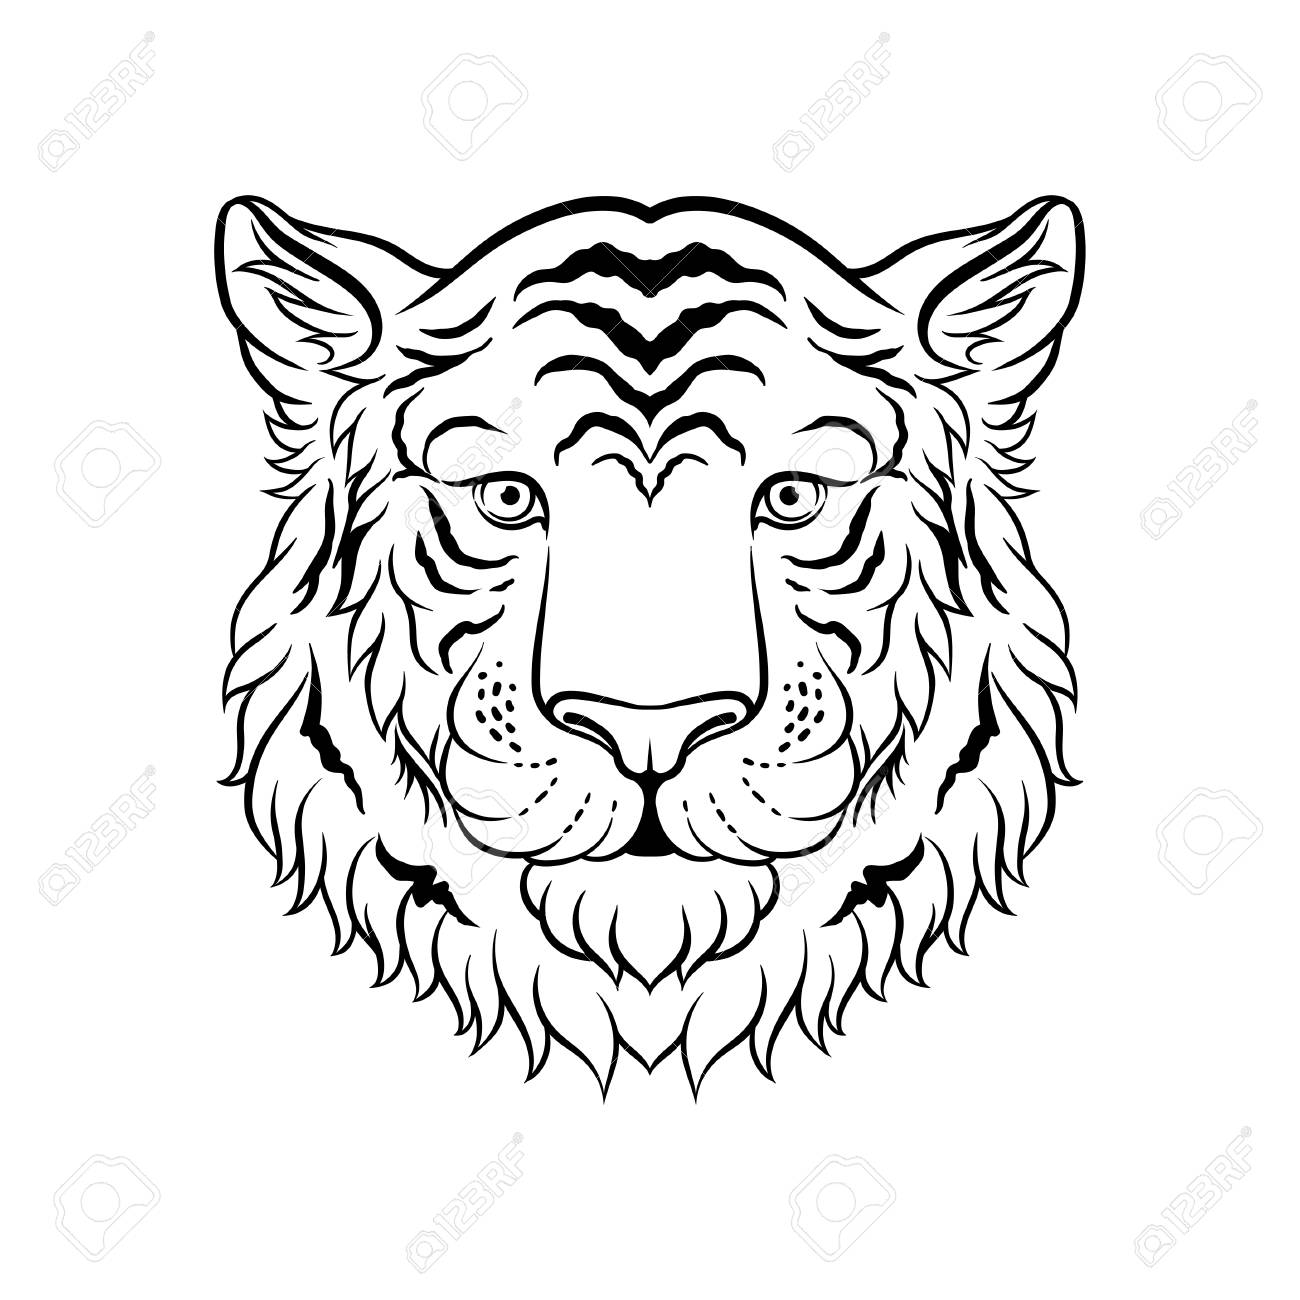 Black and white sketch of tigers head face of wild animal hand